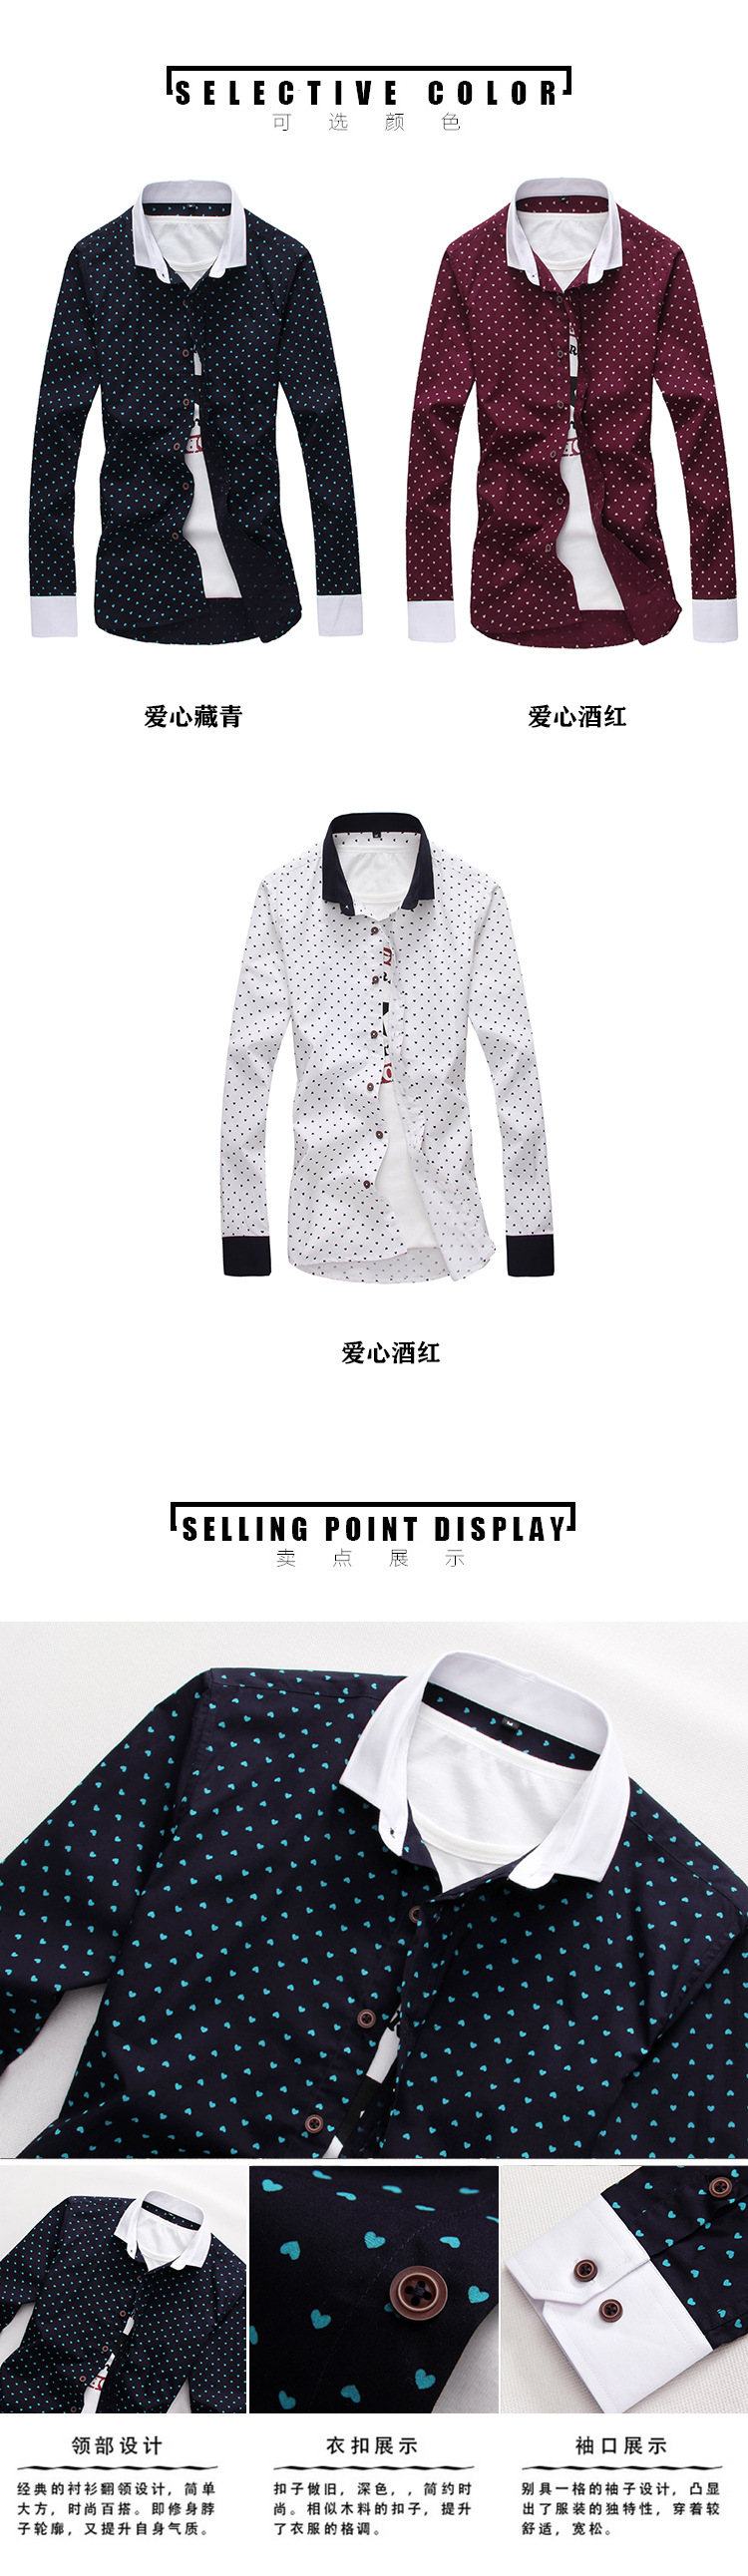 YUNY Mens Plus-Size Autumn Plaid Pattern Assorted Colors Bussiness Work Shirt AS4 M